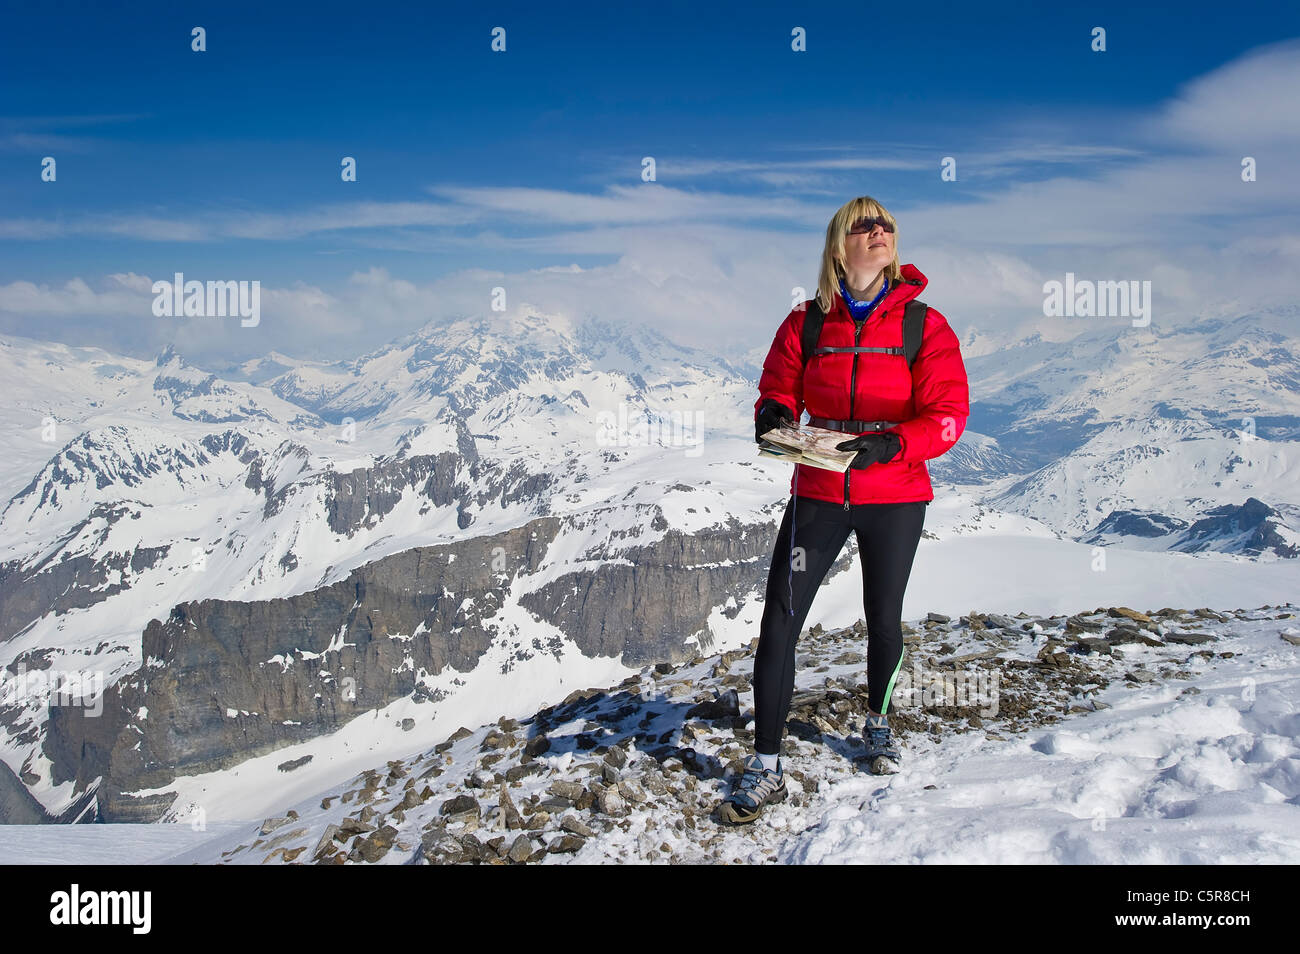 A women in high snowy mountains using a map and compass for orienteering. Stock Photo